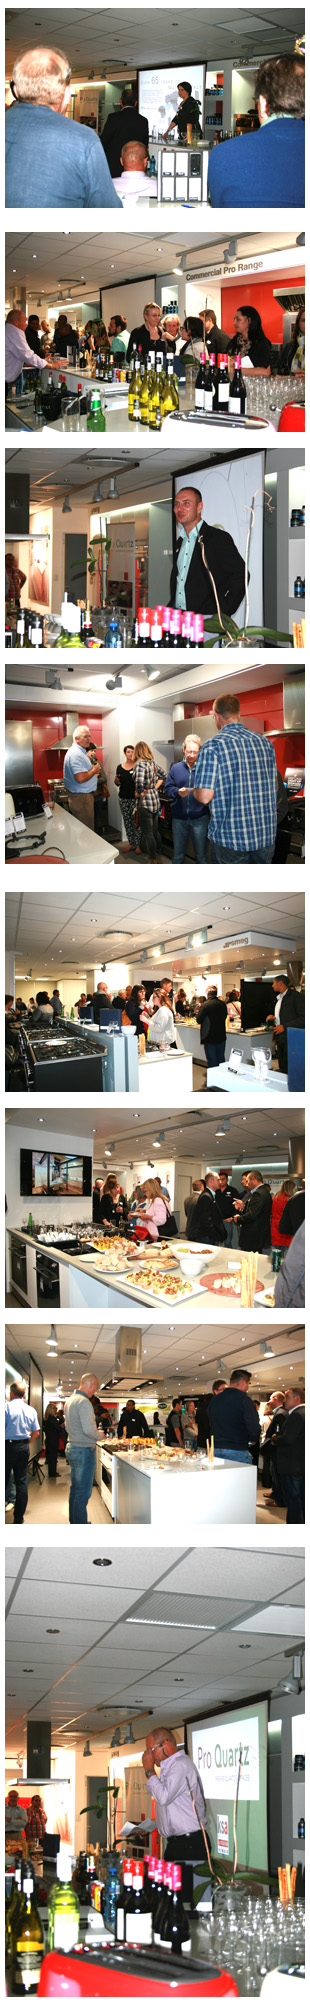 Superb product evening held in CT